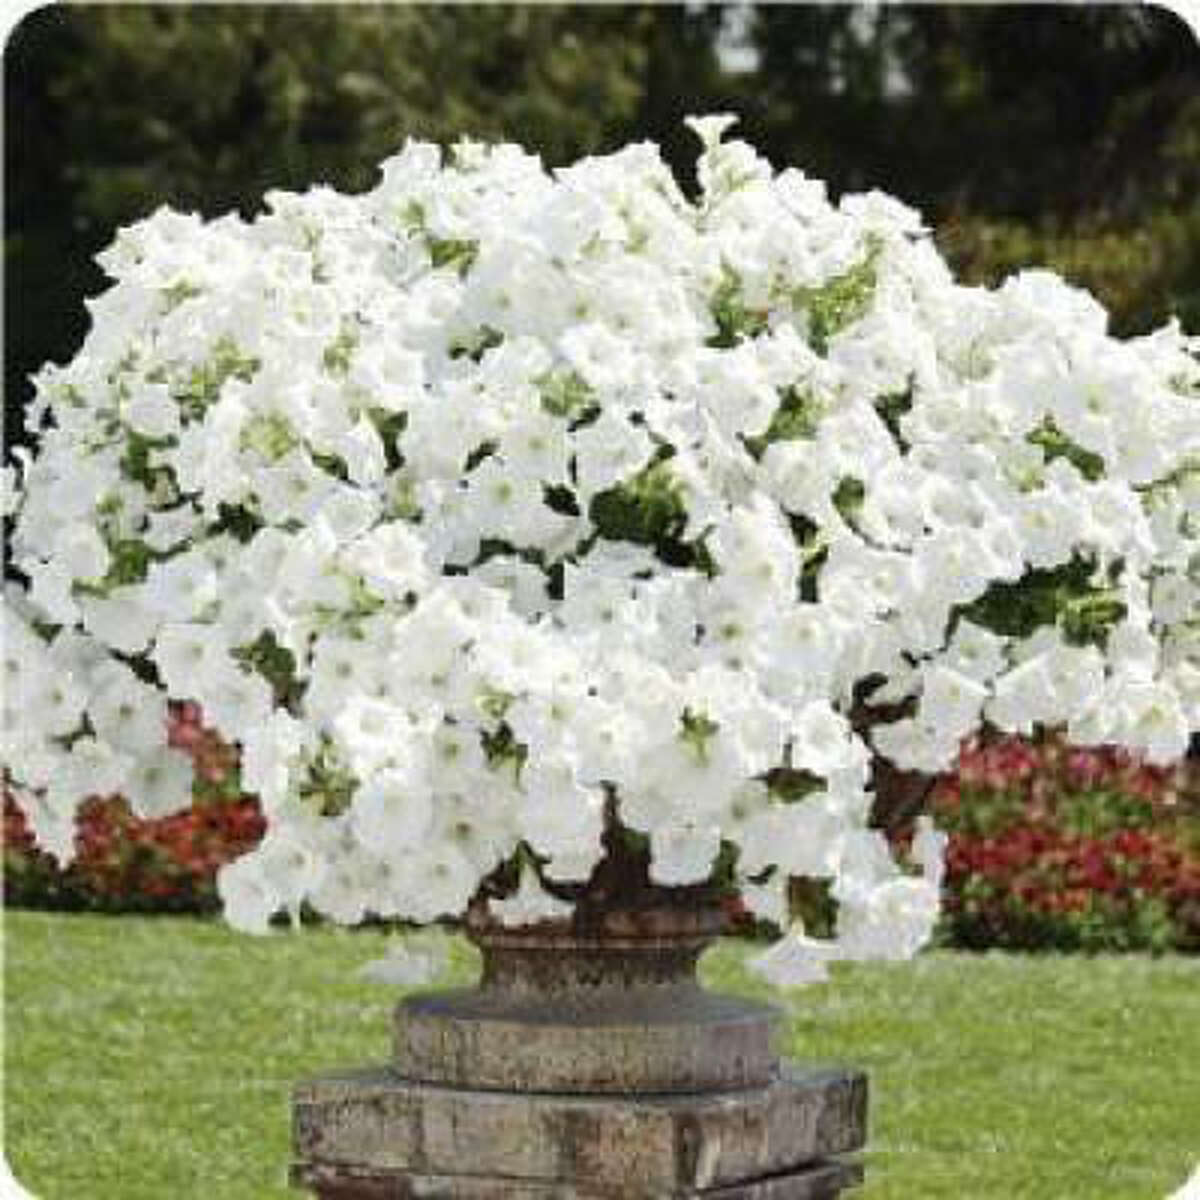 'Easy Wave' white petunia. Soft, fluttering petunias tumble through beds and over container lips. Create your own white winter garden | Submit your garden photos | Houston Plant Database | HoustonGrows.com